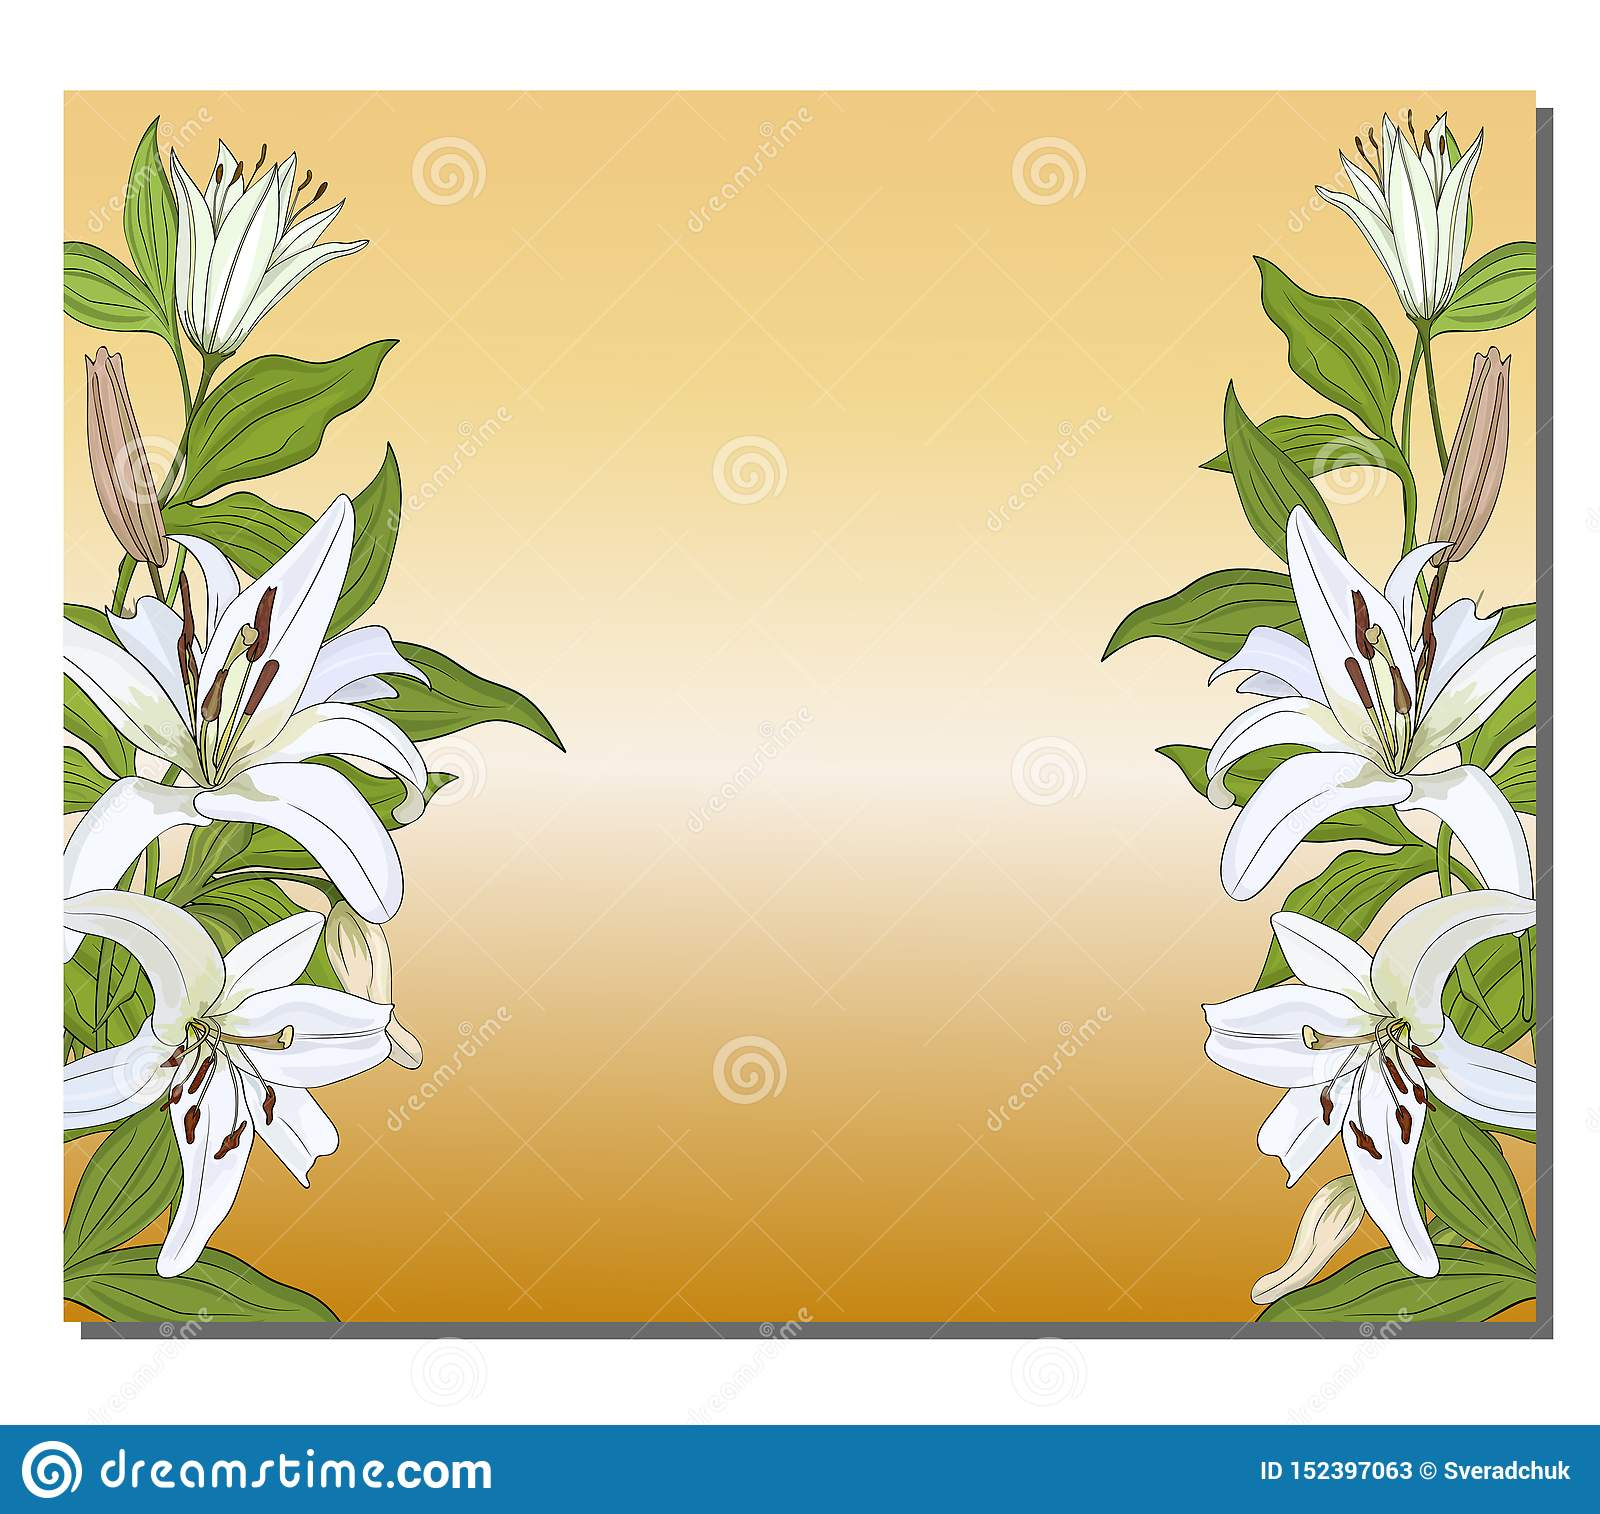 Banner with a vertical border of white lilies on a gold background. Vector